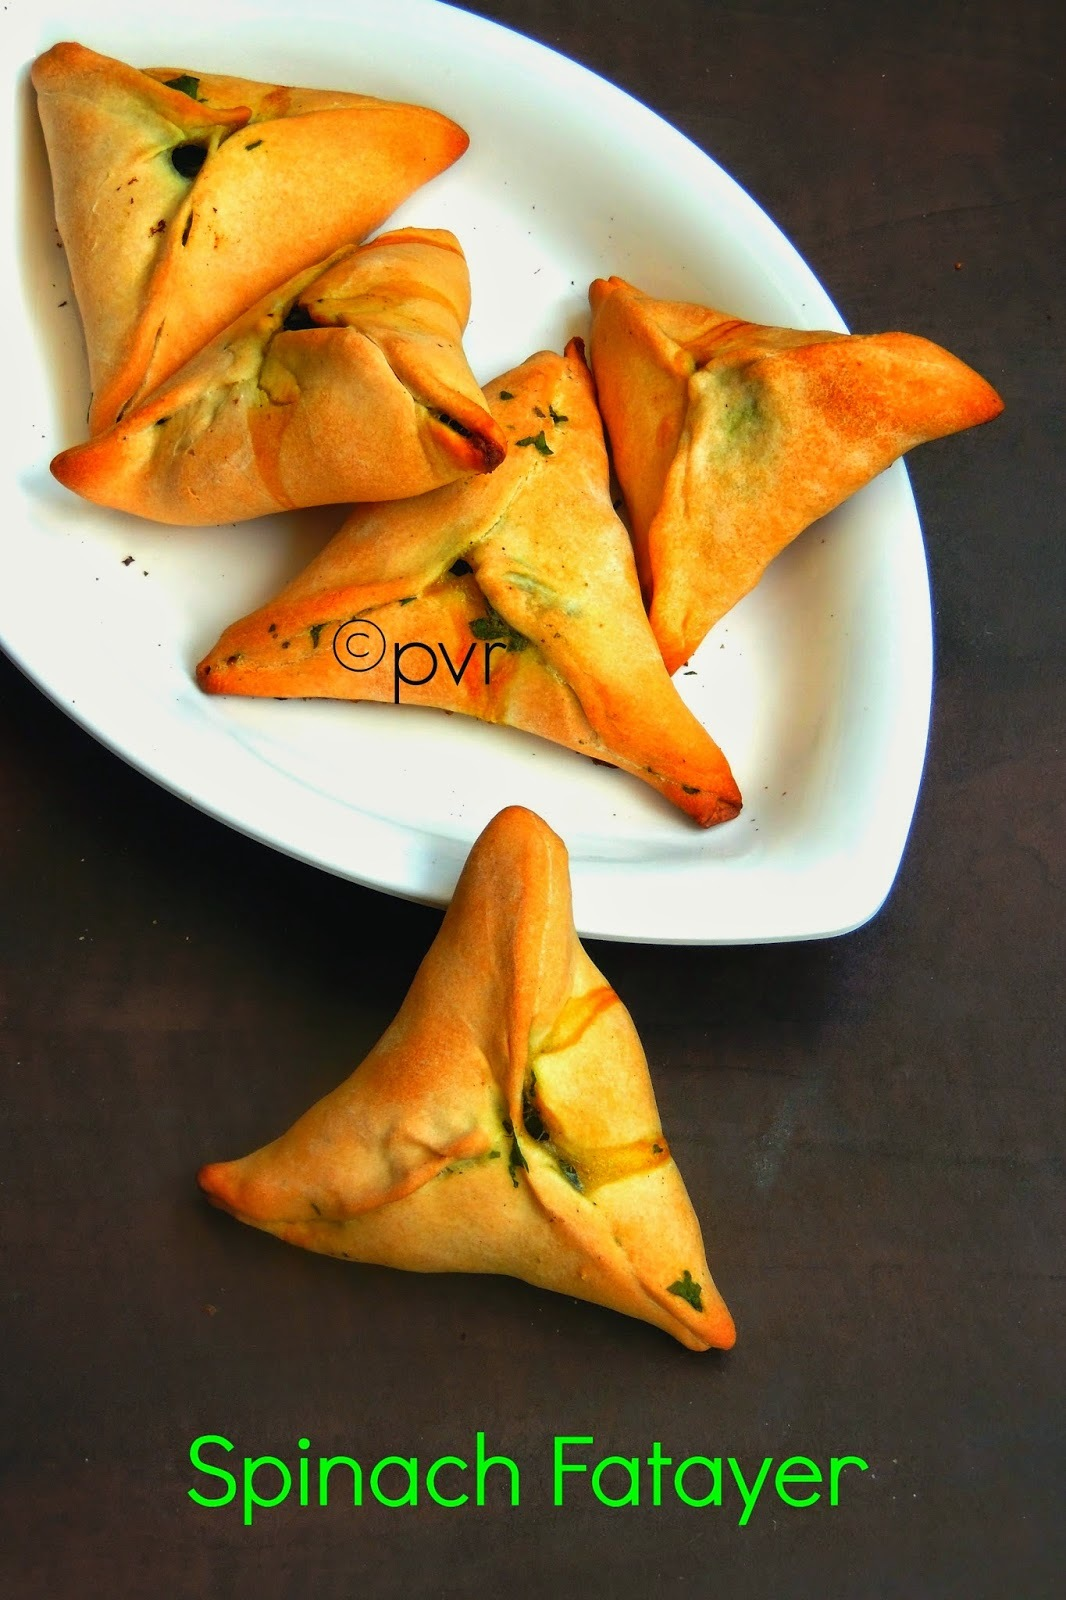 Spinach Fatayer/Fatayer Sabanekh/Spinach Pastry Triangles